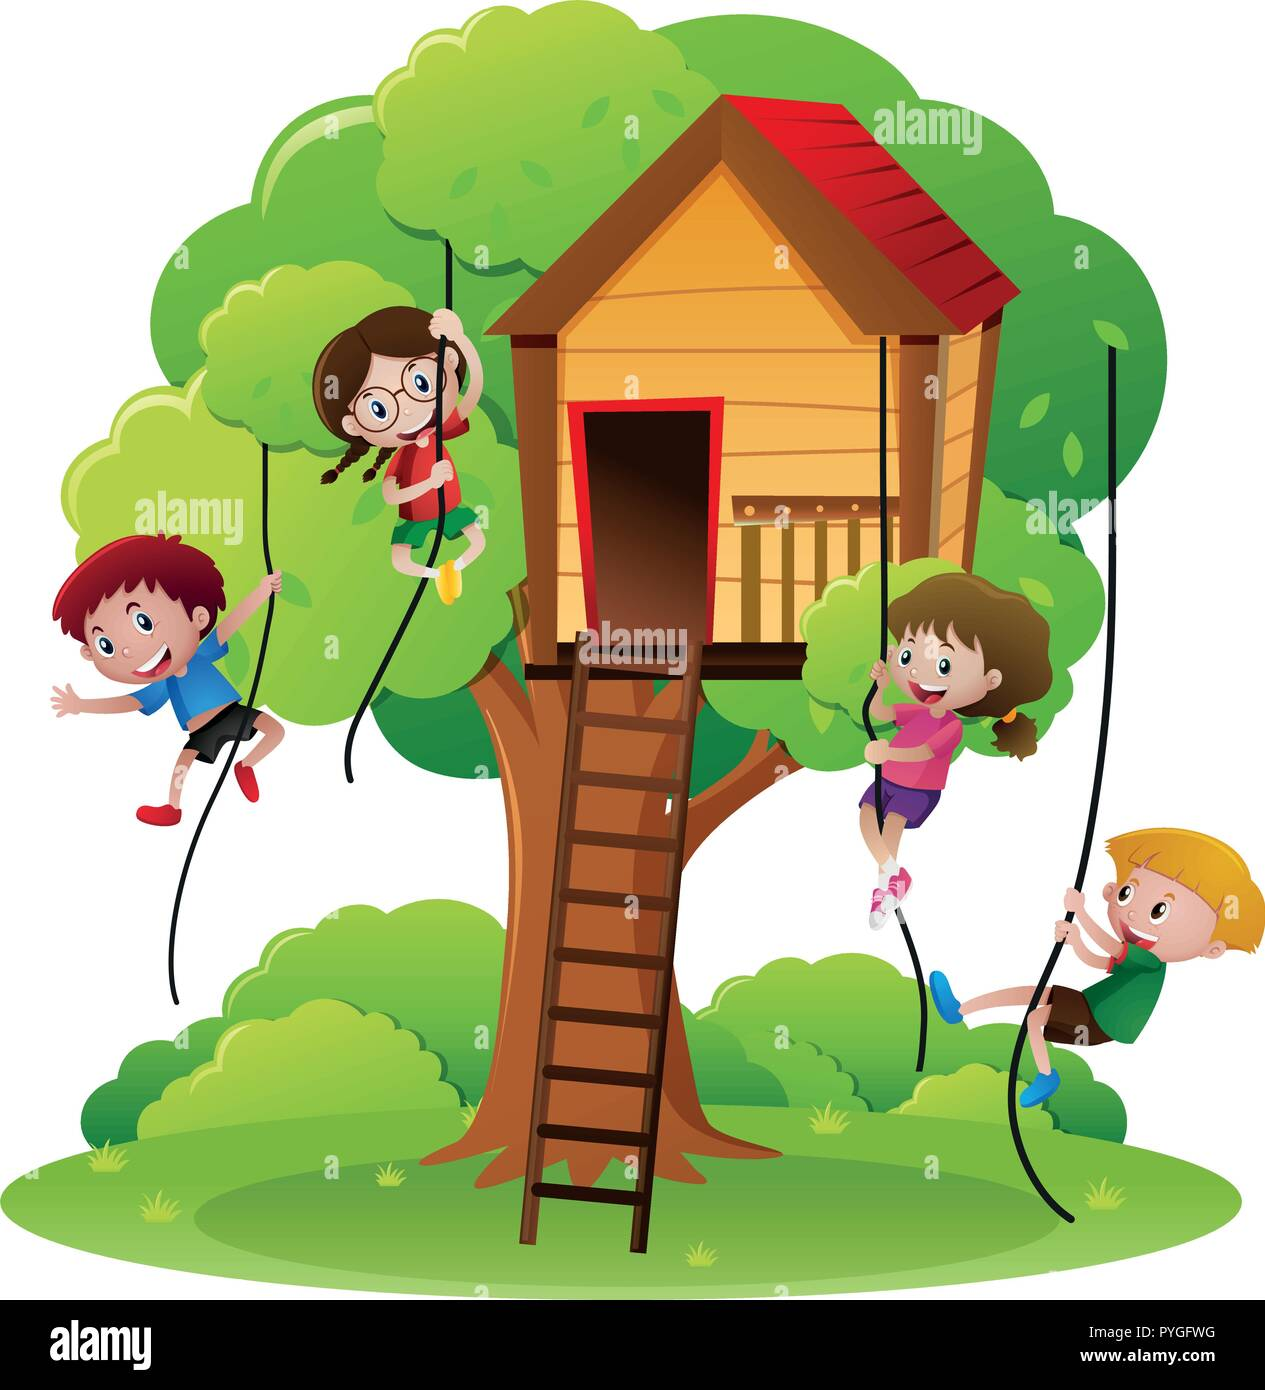 Children Climbing Up Tree Illustration High Resolution Stock Photography And Images Alamy I might sleep, might not. https www alamy com children climbing rope up to treehouse illustration image223483836 html